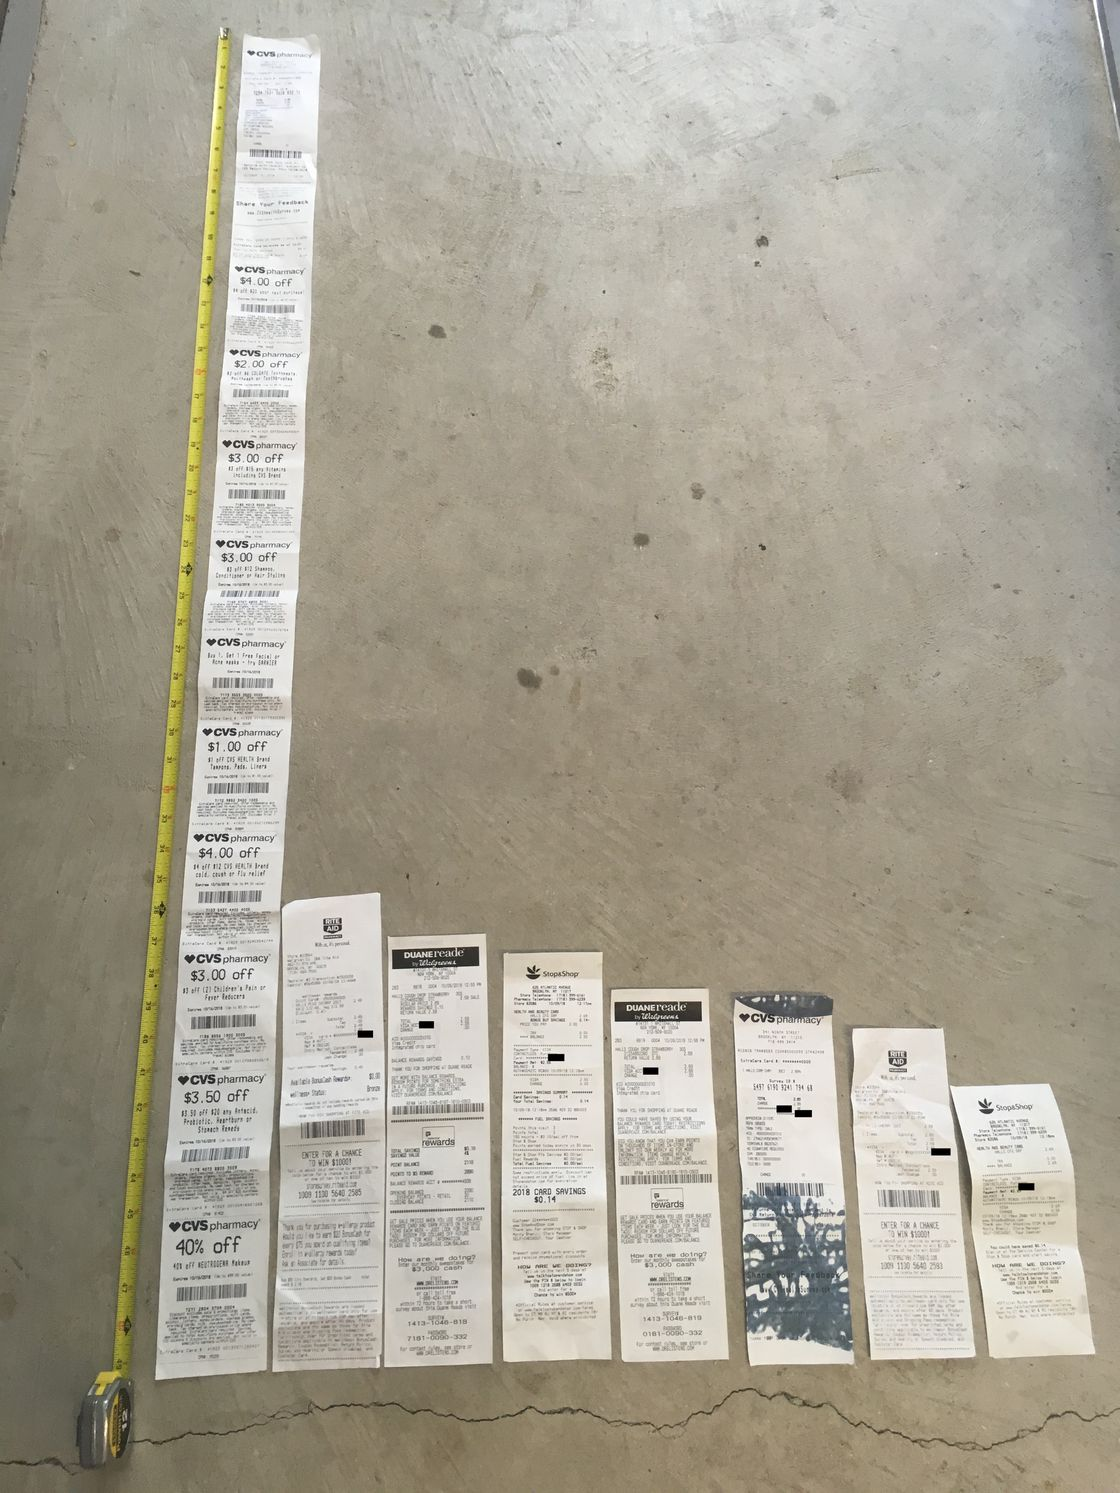 blame big data for cvs u0026 39 s endless miles of receipts    boing